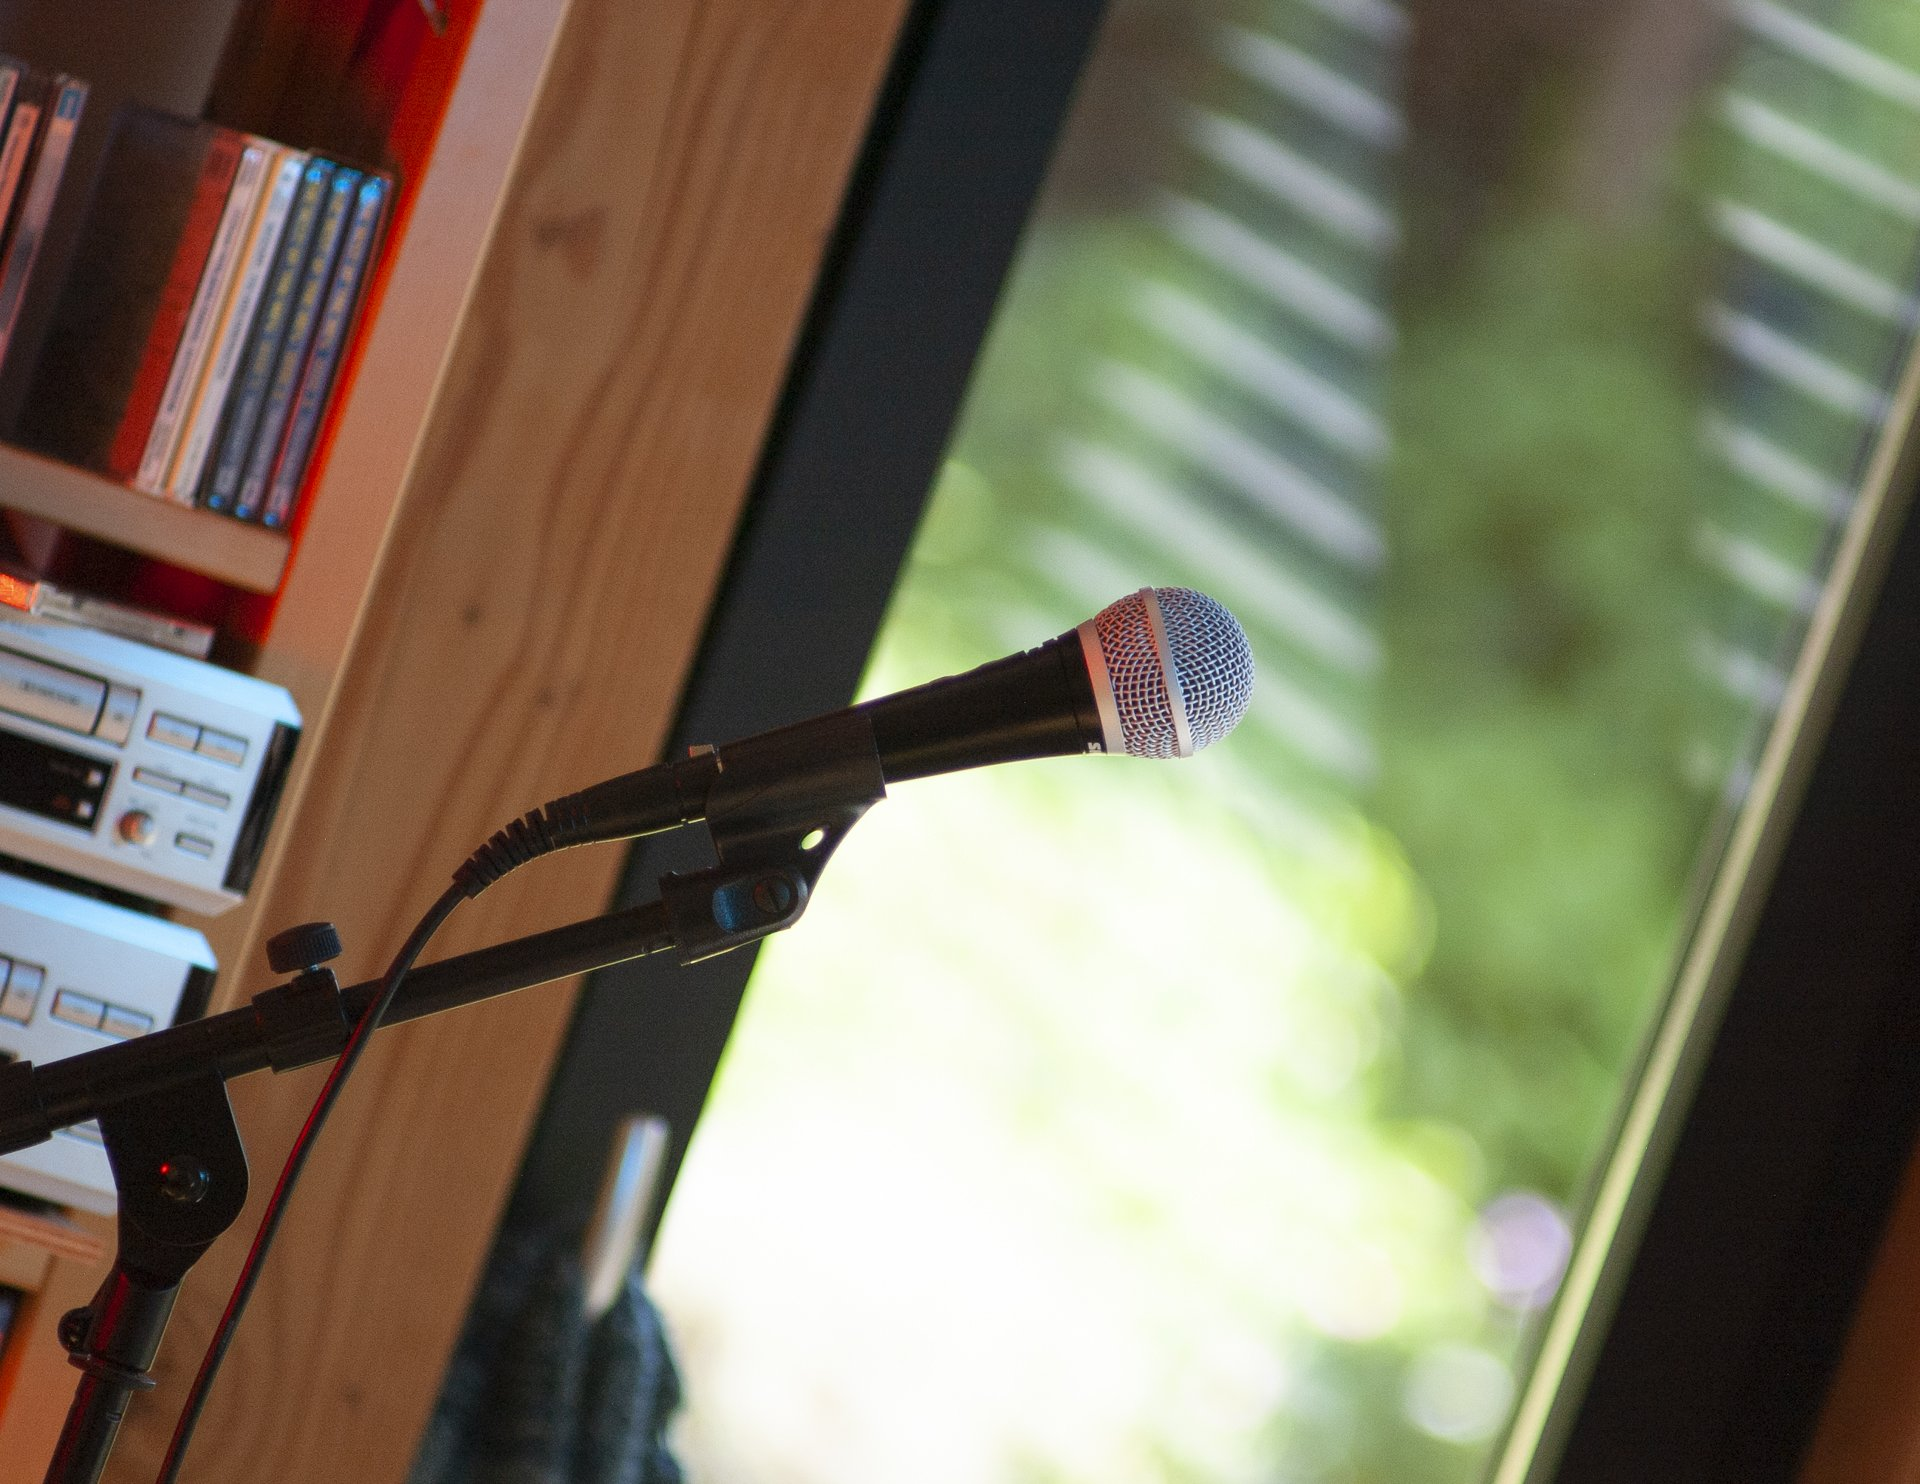 A microphone backlit by sunshine and light... music and CDs on shelving can be glimpsed in the corner of the shot.